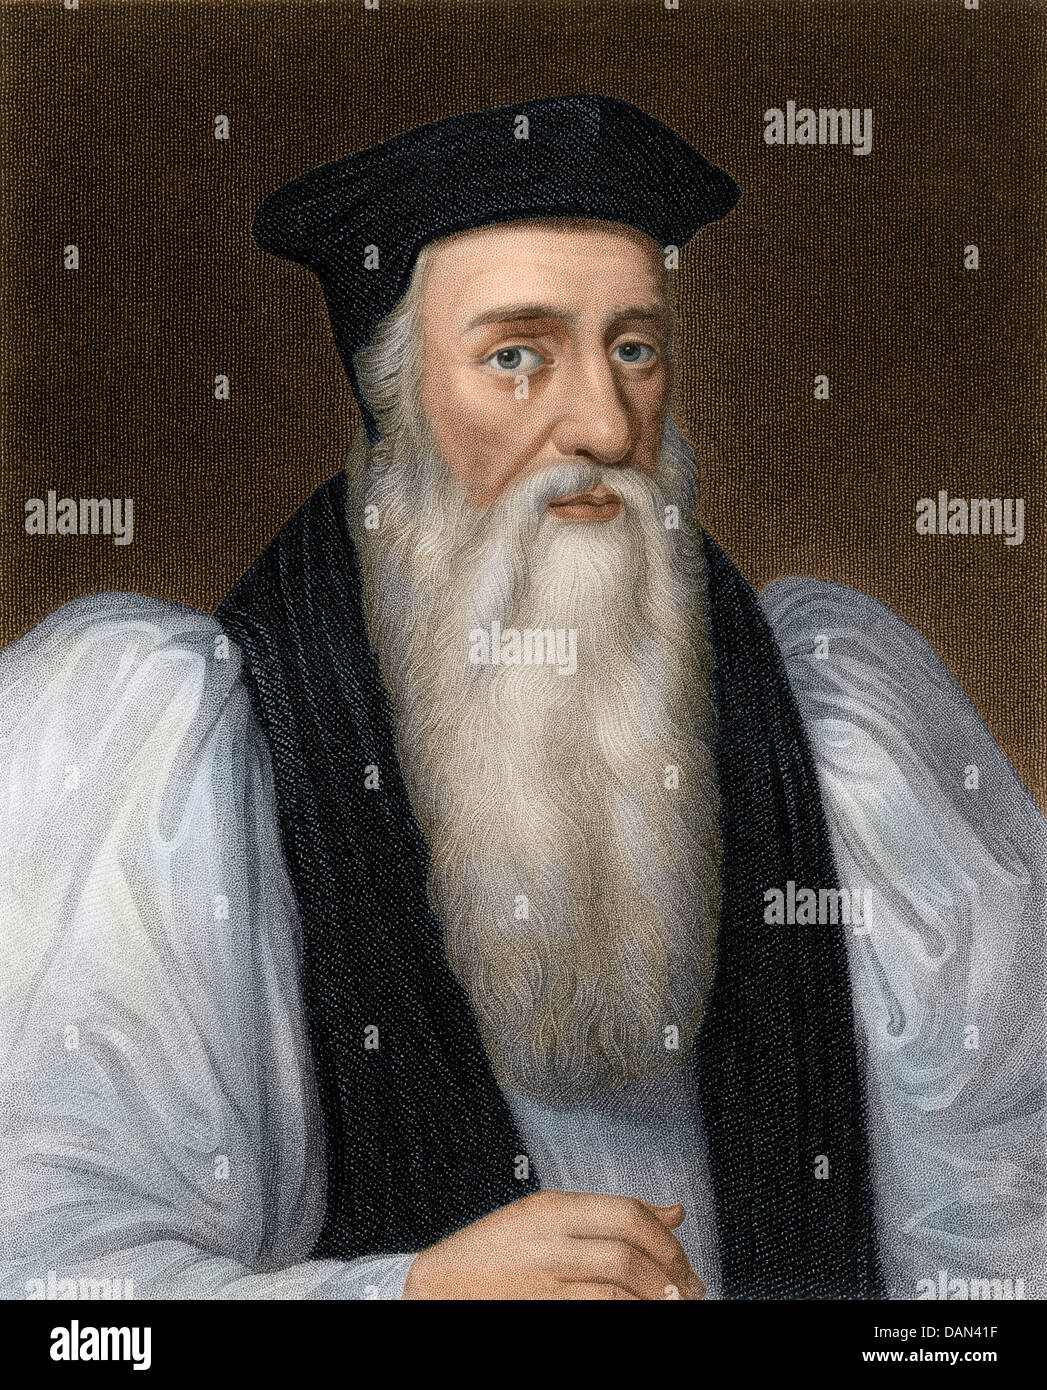 Thomas Cranmer, Archbishop of Canterbury executed for heresy under Mary I. Digitally colored steel engraving - Stock Image